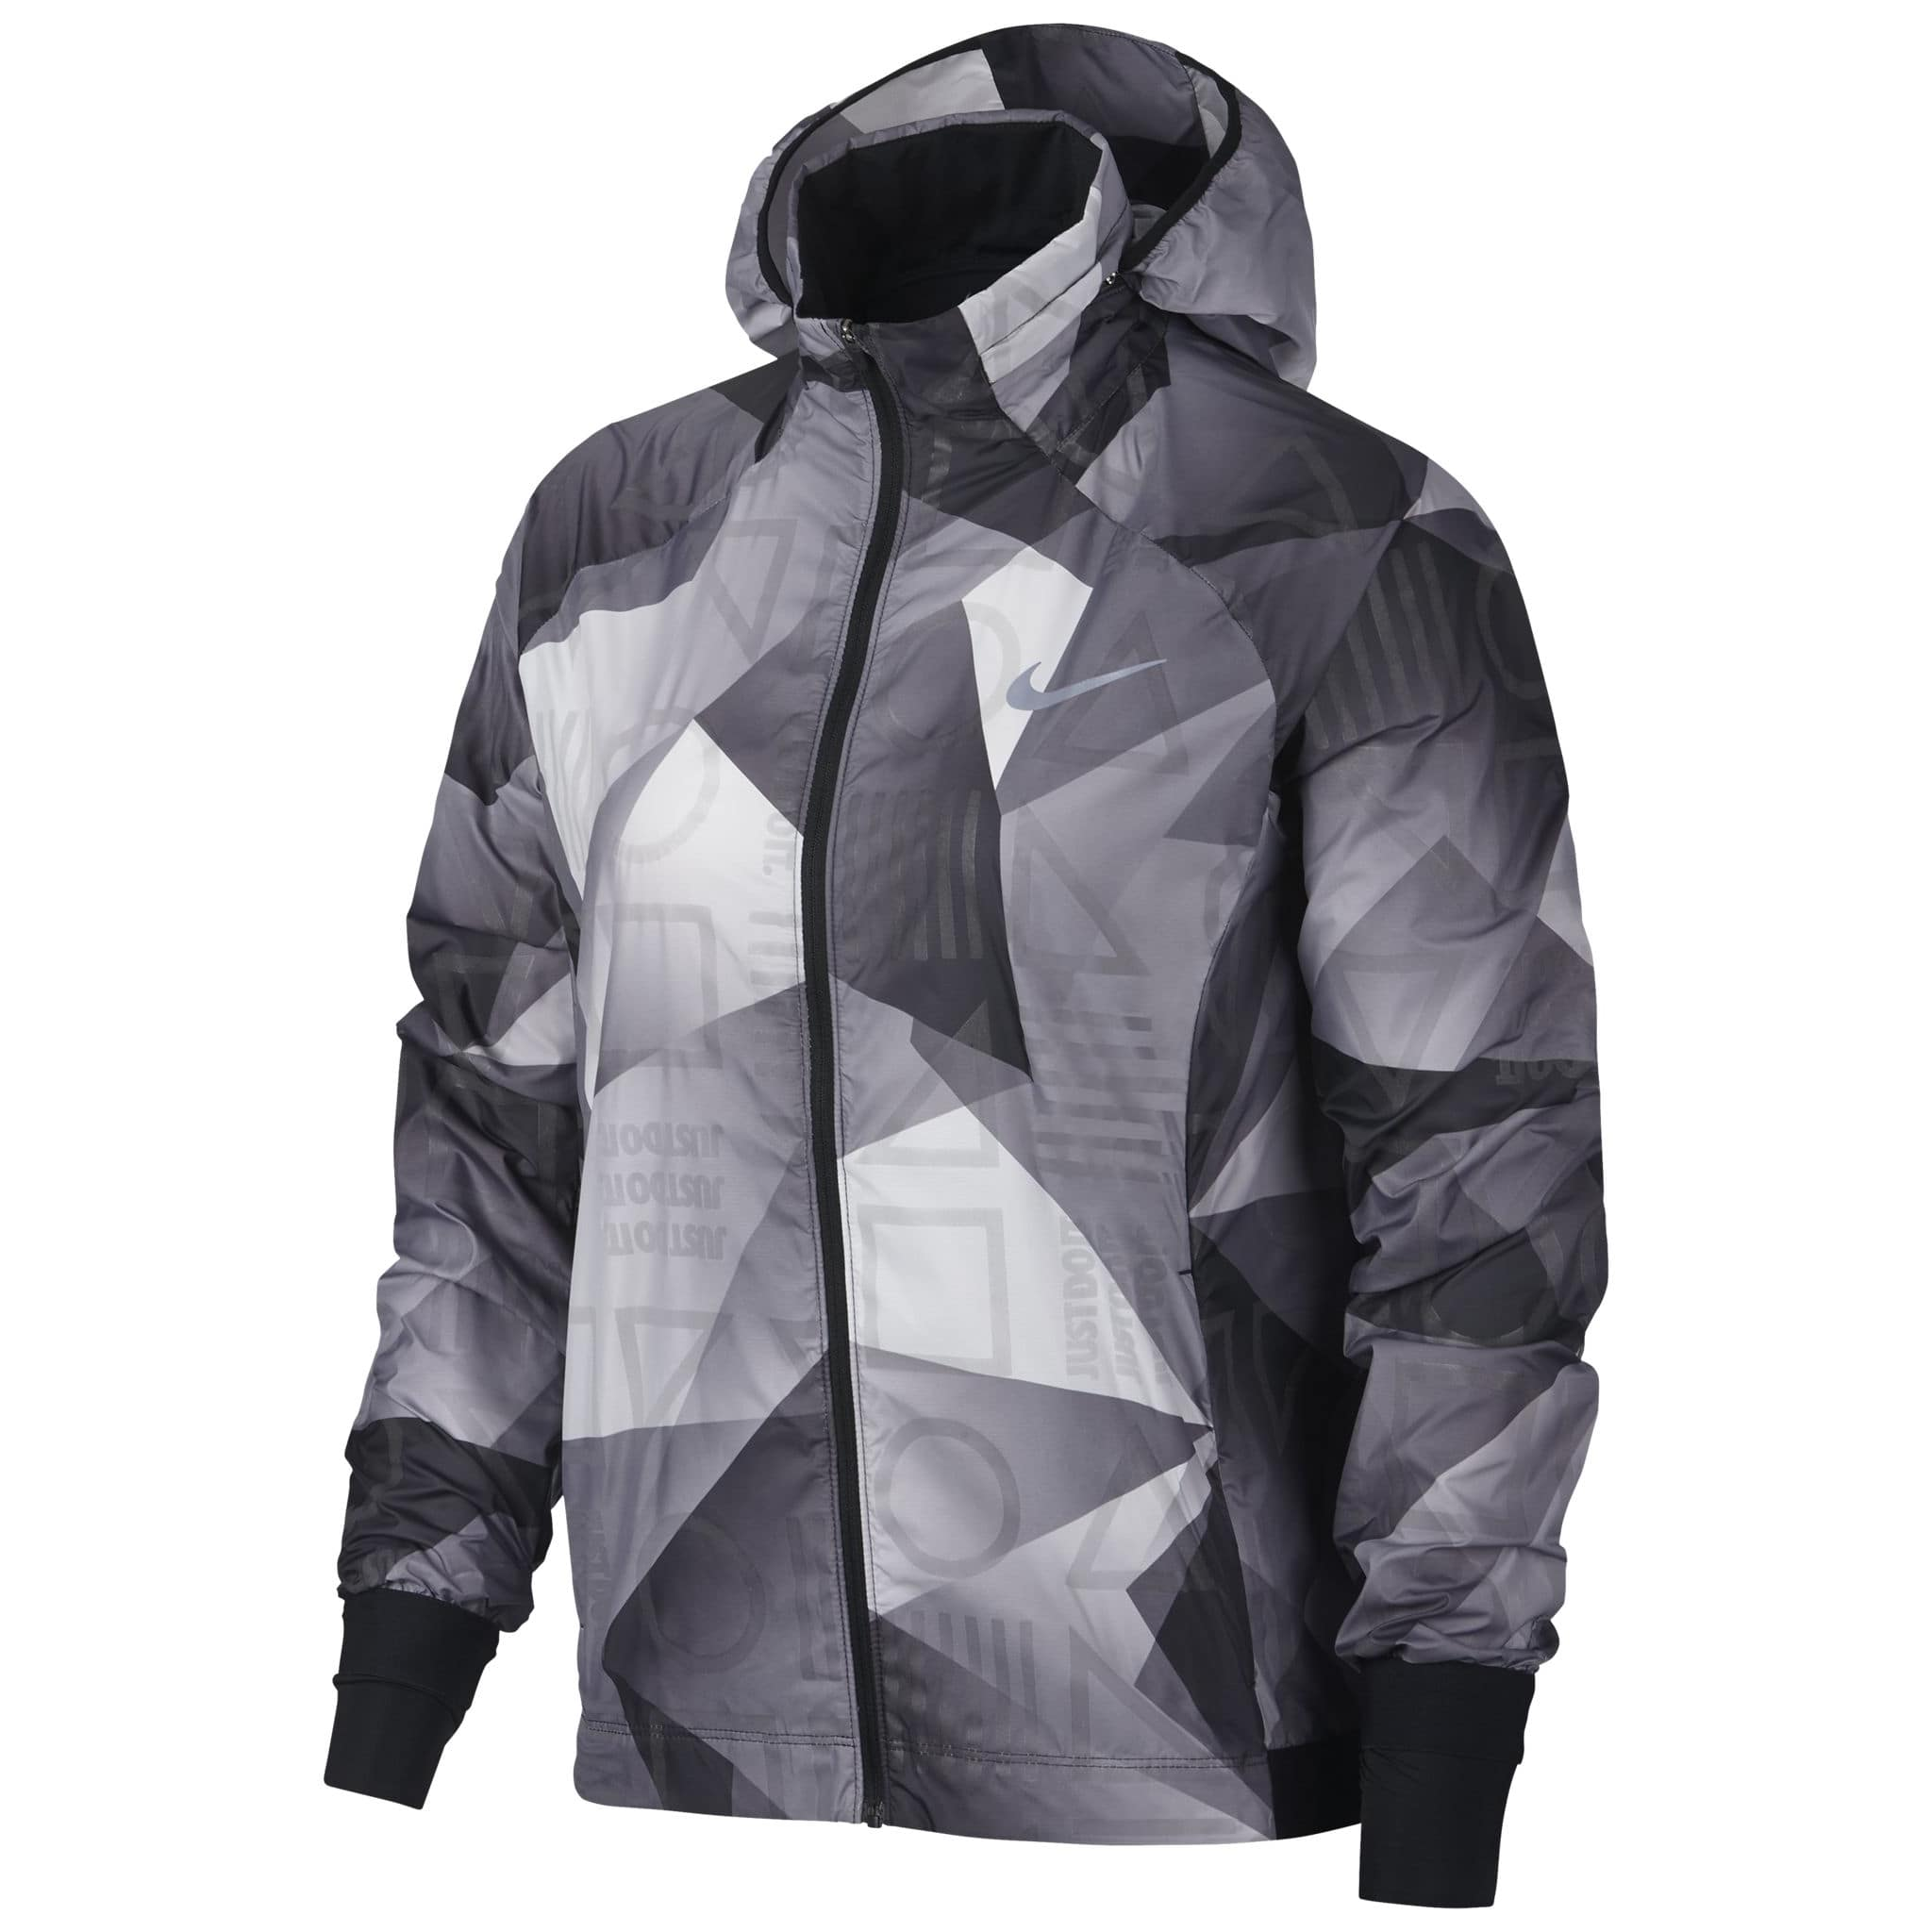 Shield Hooded Printed Running Jacket W